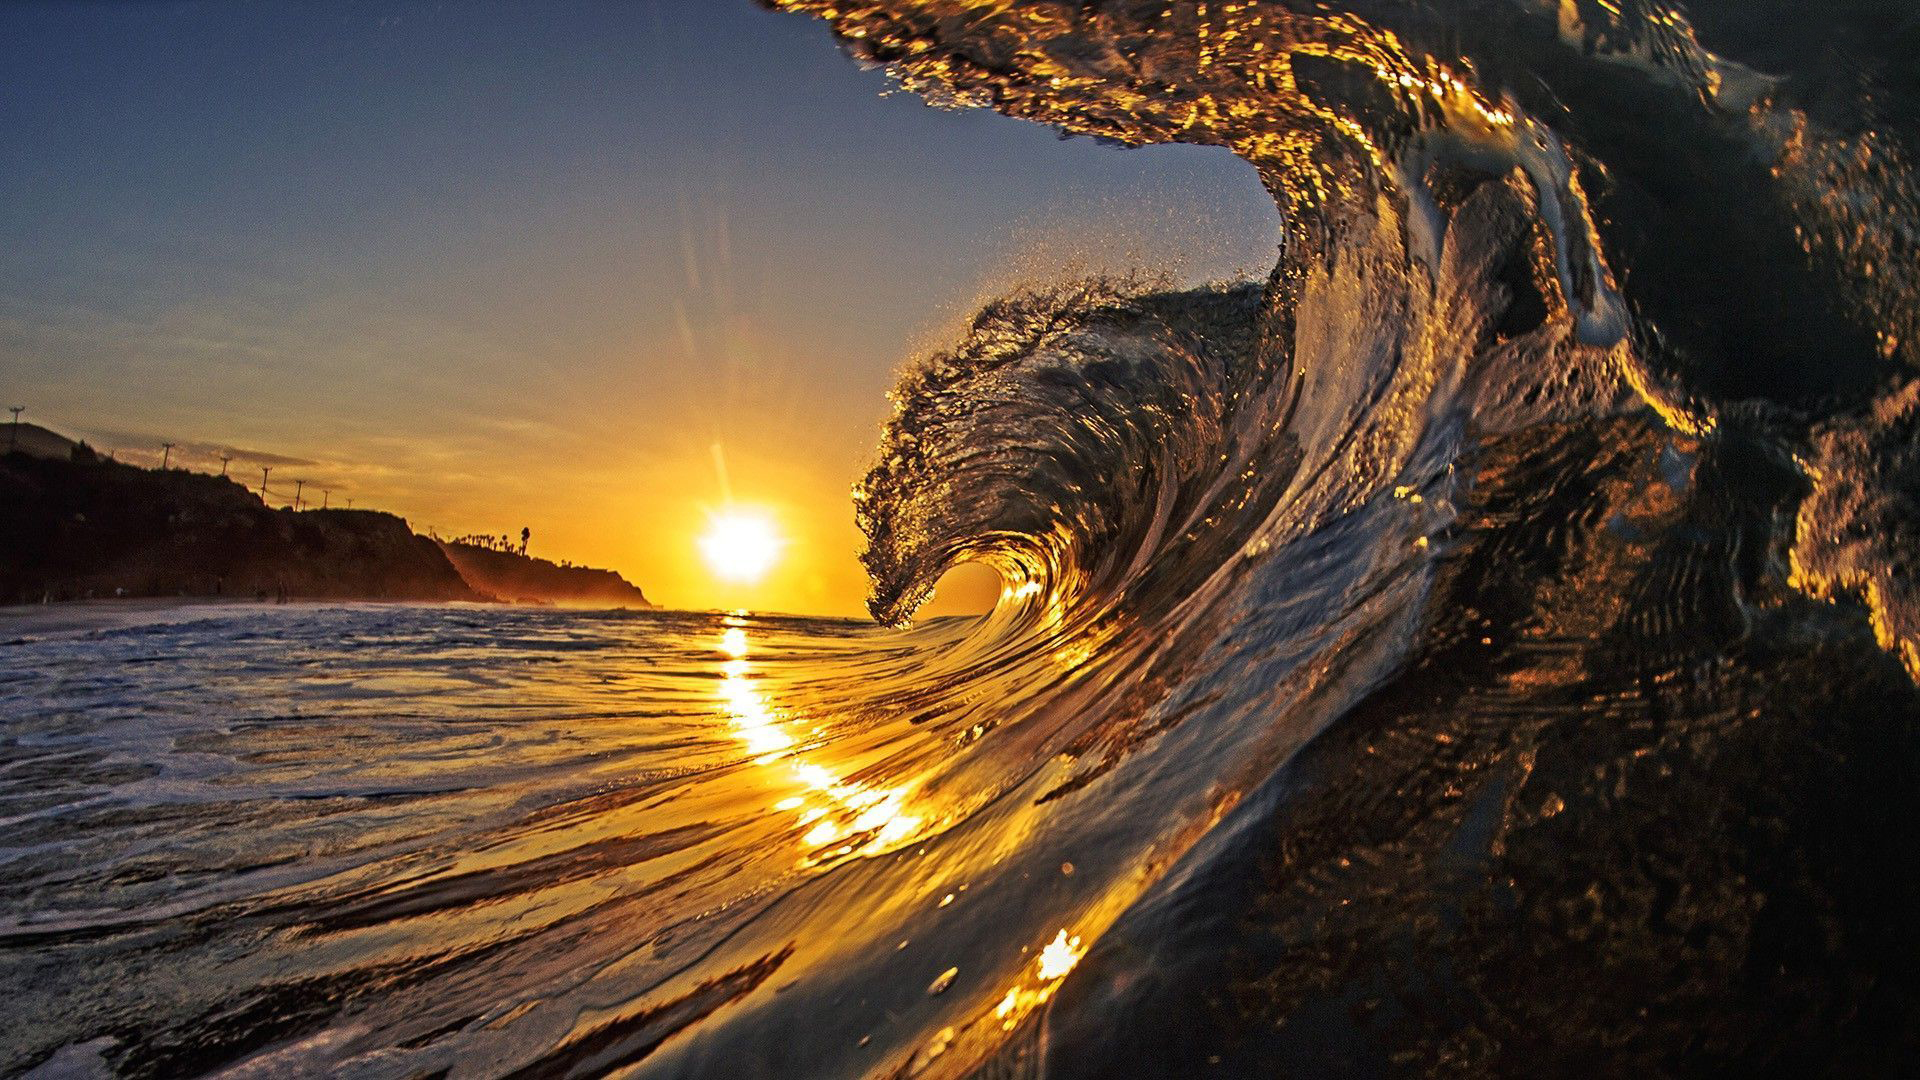 Wave in the sunset 1920x1080 beach wallpapers